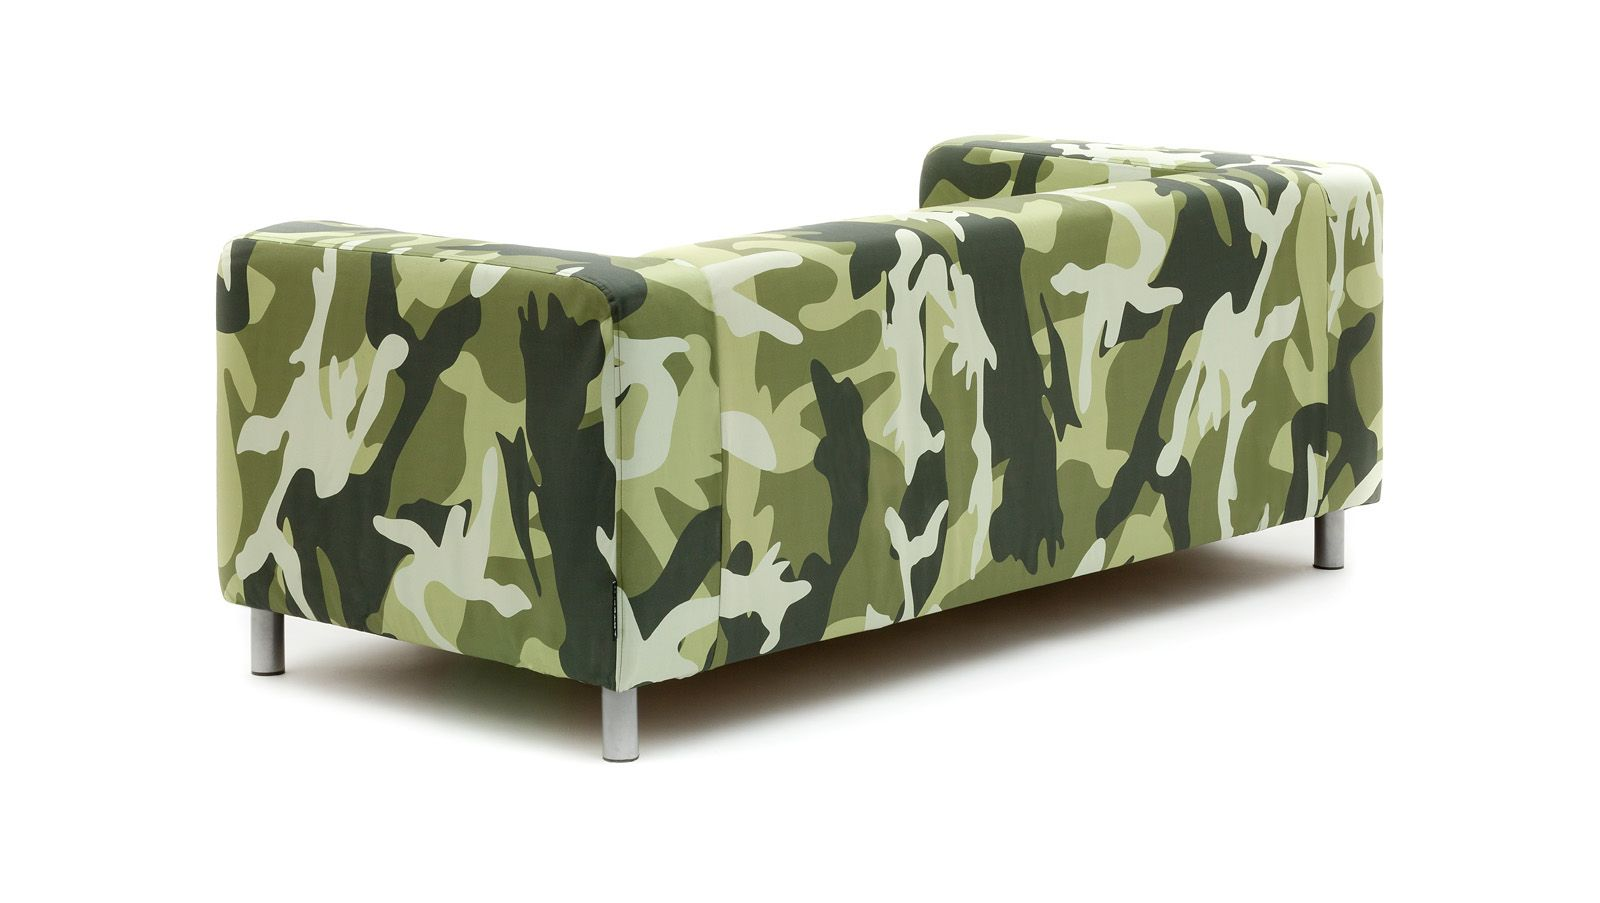 Parading A Camouflage Pattern In Khaki Colors, Our Army Sofa Slipcover Is  The Right Tactical Move If You Have No Appreciation For Uniformity.